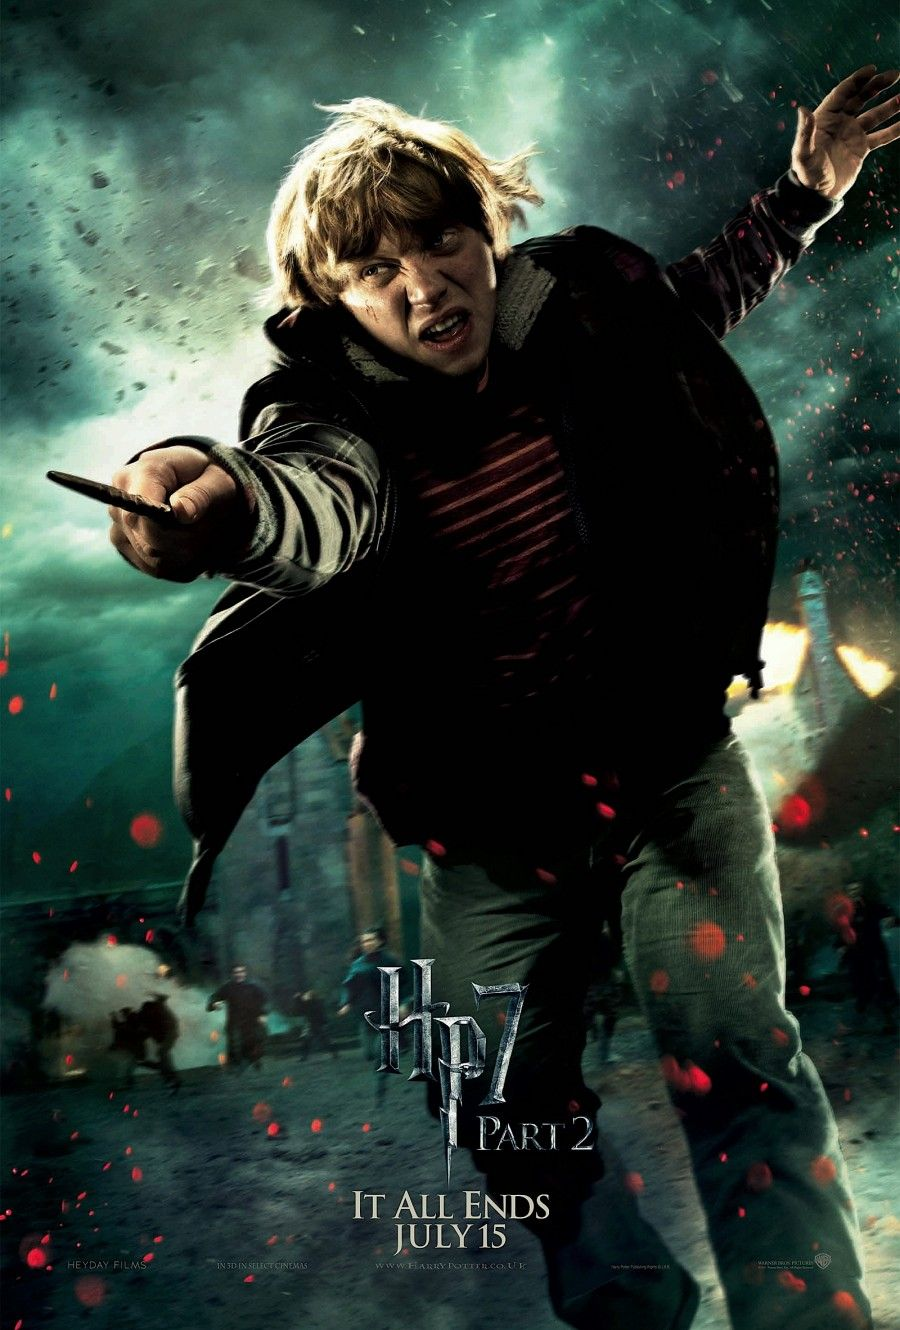 Ron Weasley Rupert Grint in Harry Potter and the Deathly Hallows Part 2 HarryPotter 3D